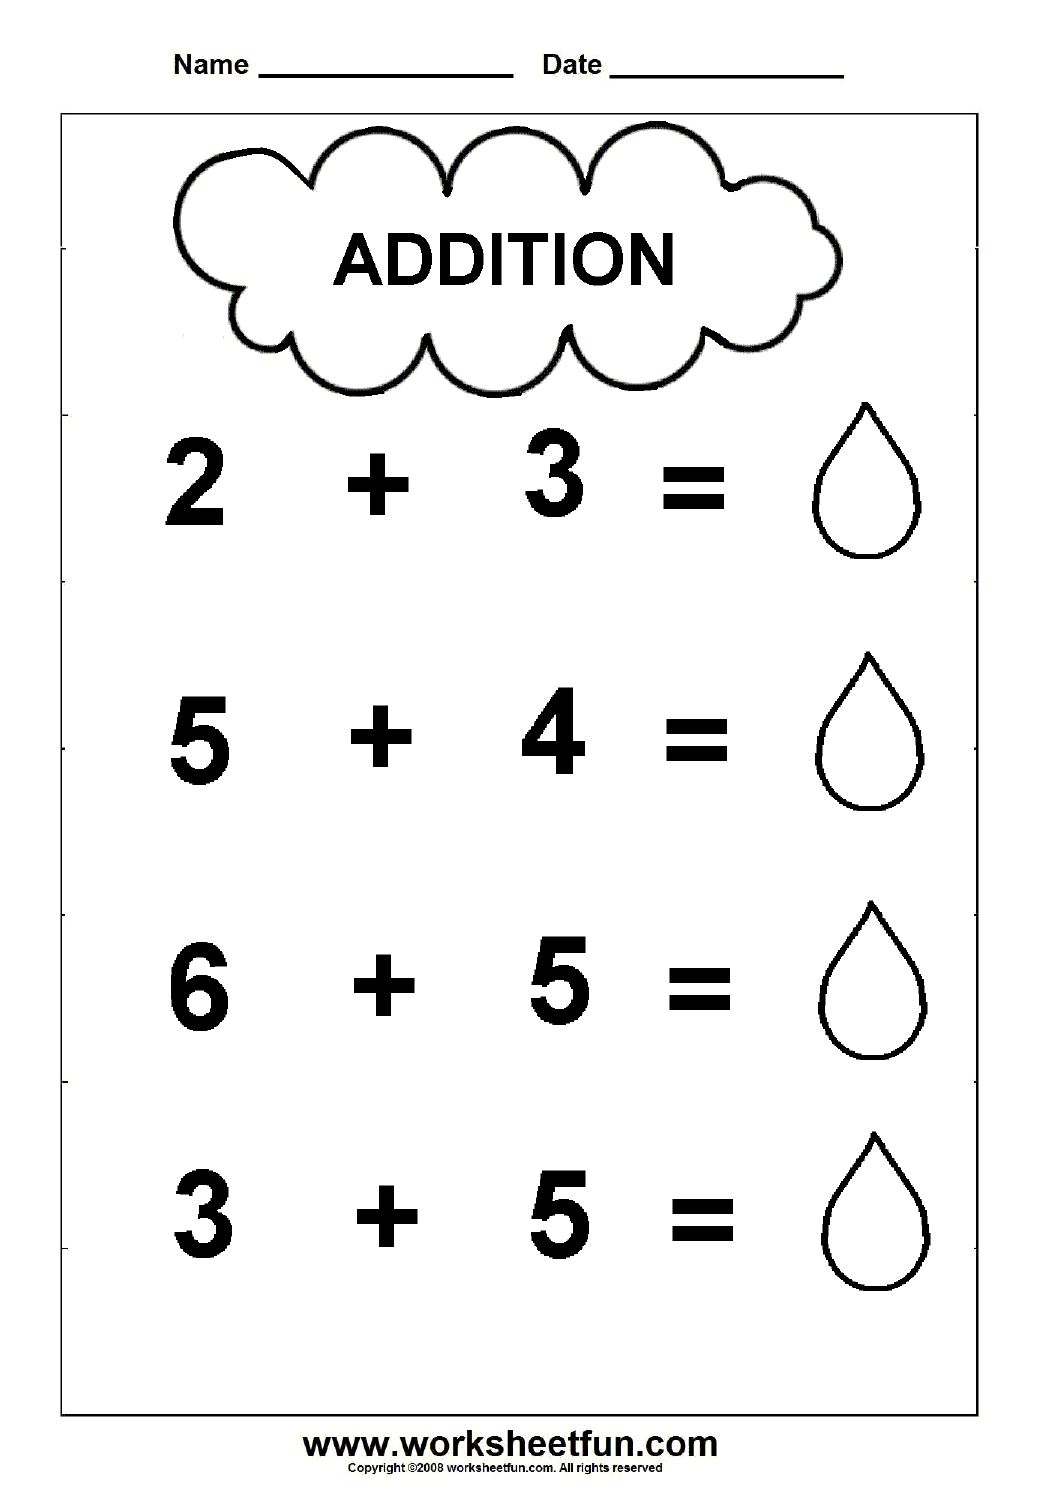 Collection Of Math Worksheets For Kindergarten Addition Free